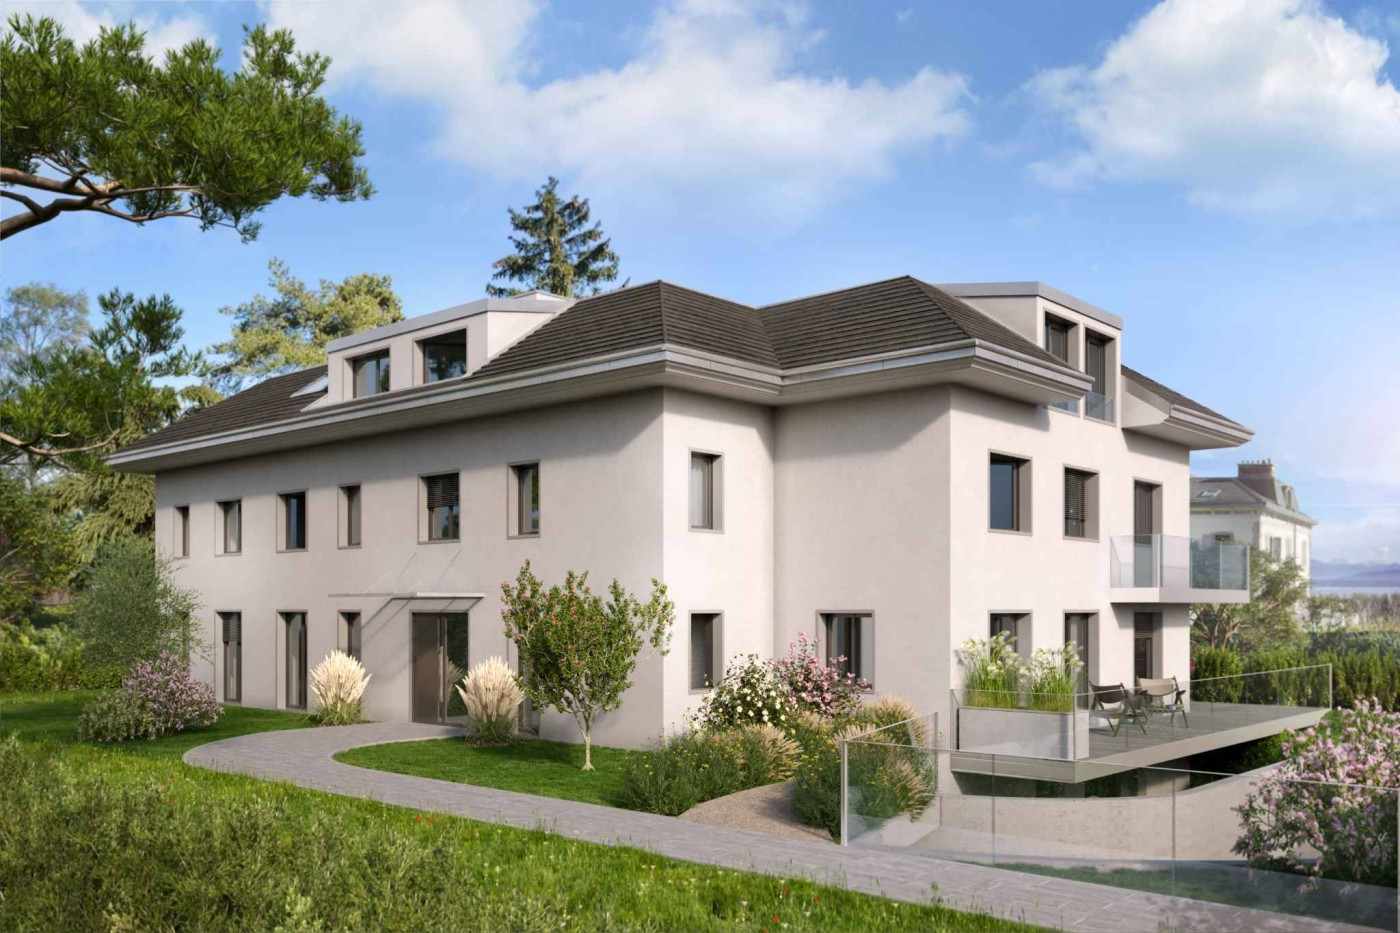 À vendre : Appartement 5 chambres Nyon - Ref : 34884 | Naef Immobilier